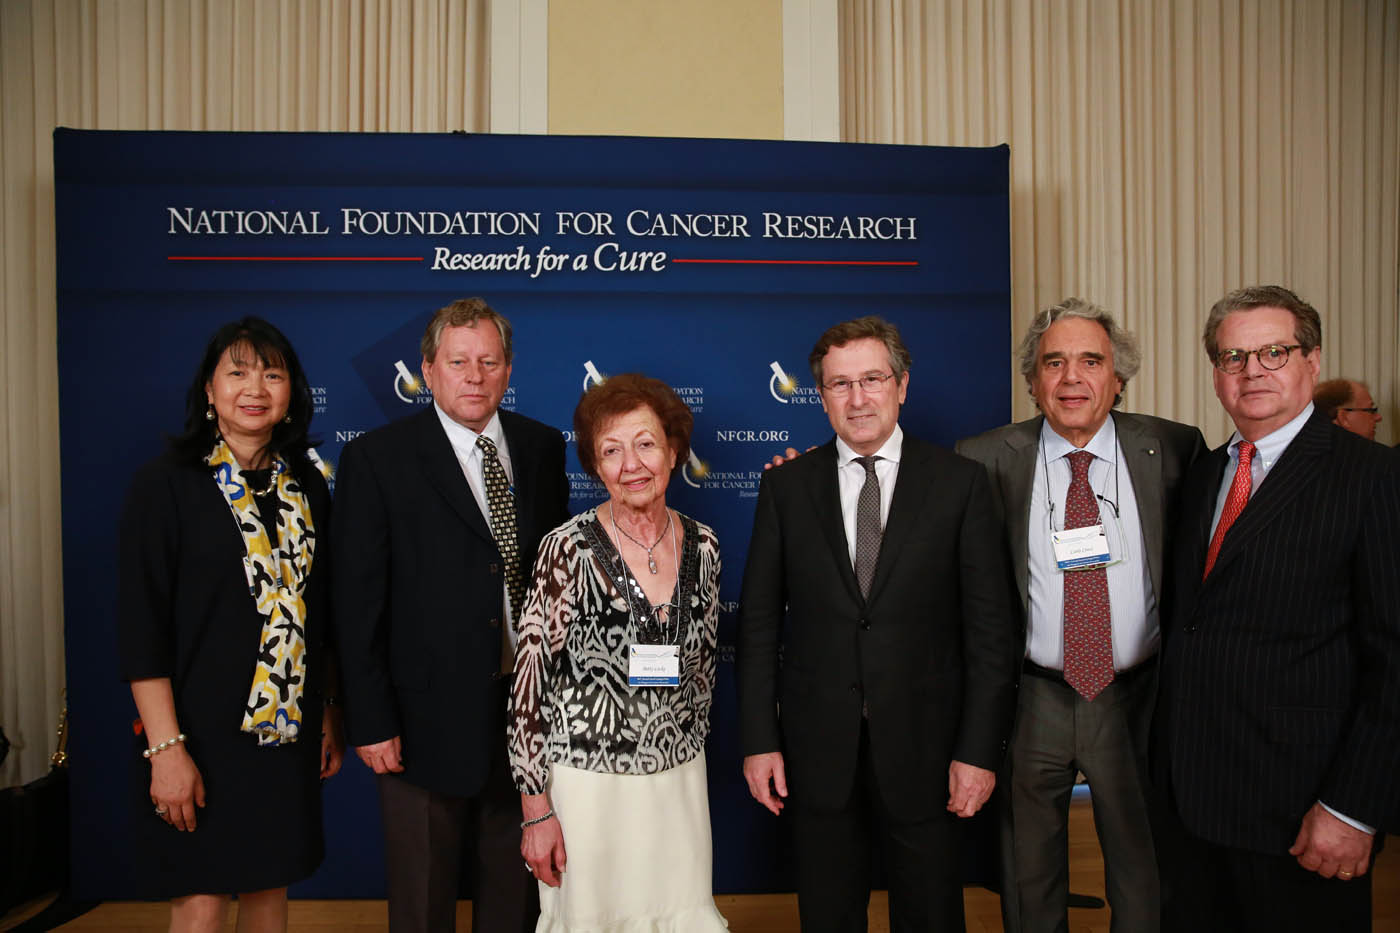 NFCR supporter Betty Locke with past Szent-Györgyi Prize winners